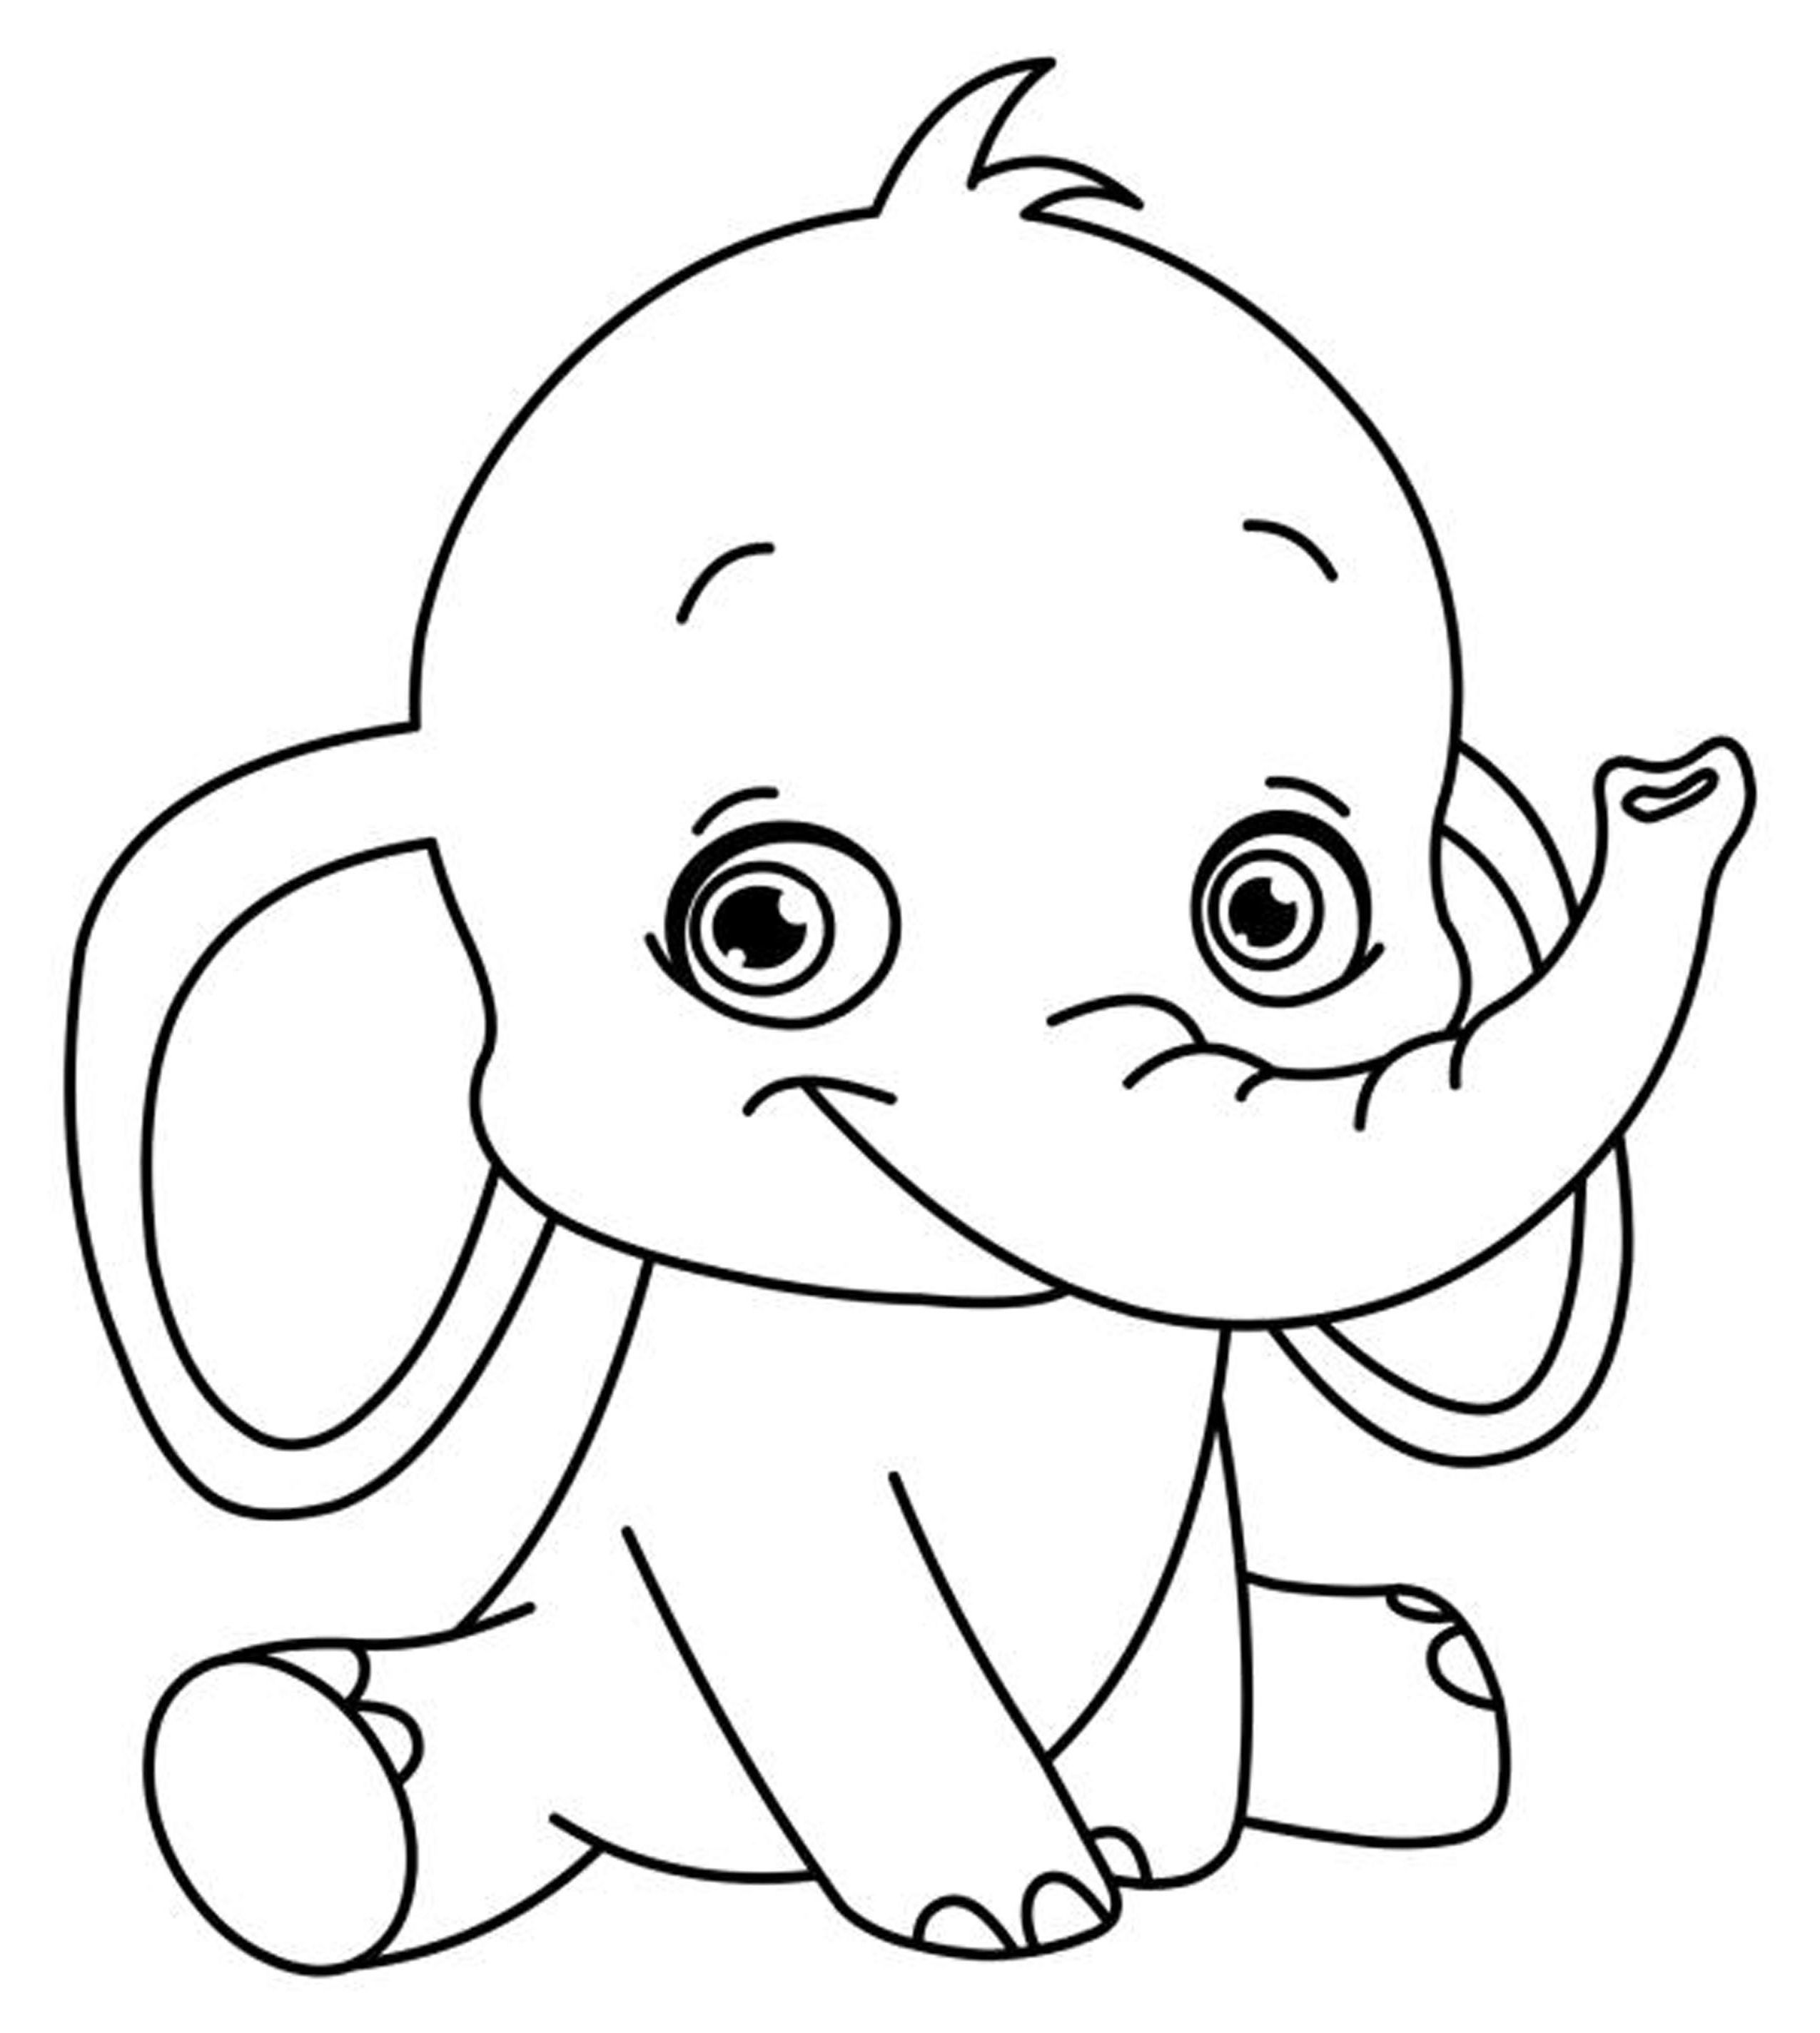 Easy Coloring Pages Printable - Coloring Home | printable coloring pages easy